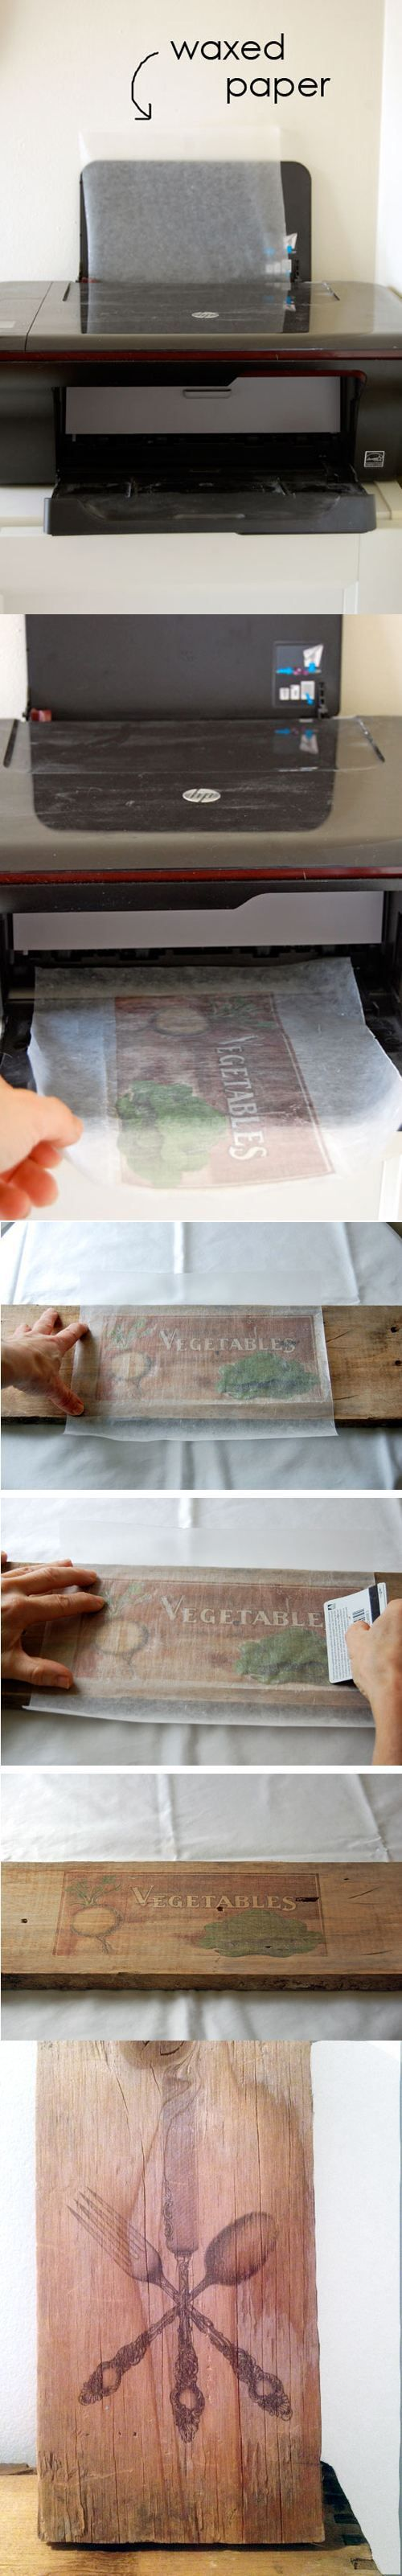 DIY Pallet proejcts That Are Easy to Make and Sell ! How to Print Pictures on Wood Waxed Paper Transfer, Wax Paper Transfer Tutorial Ideas